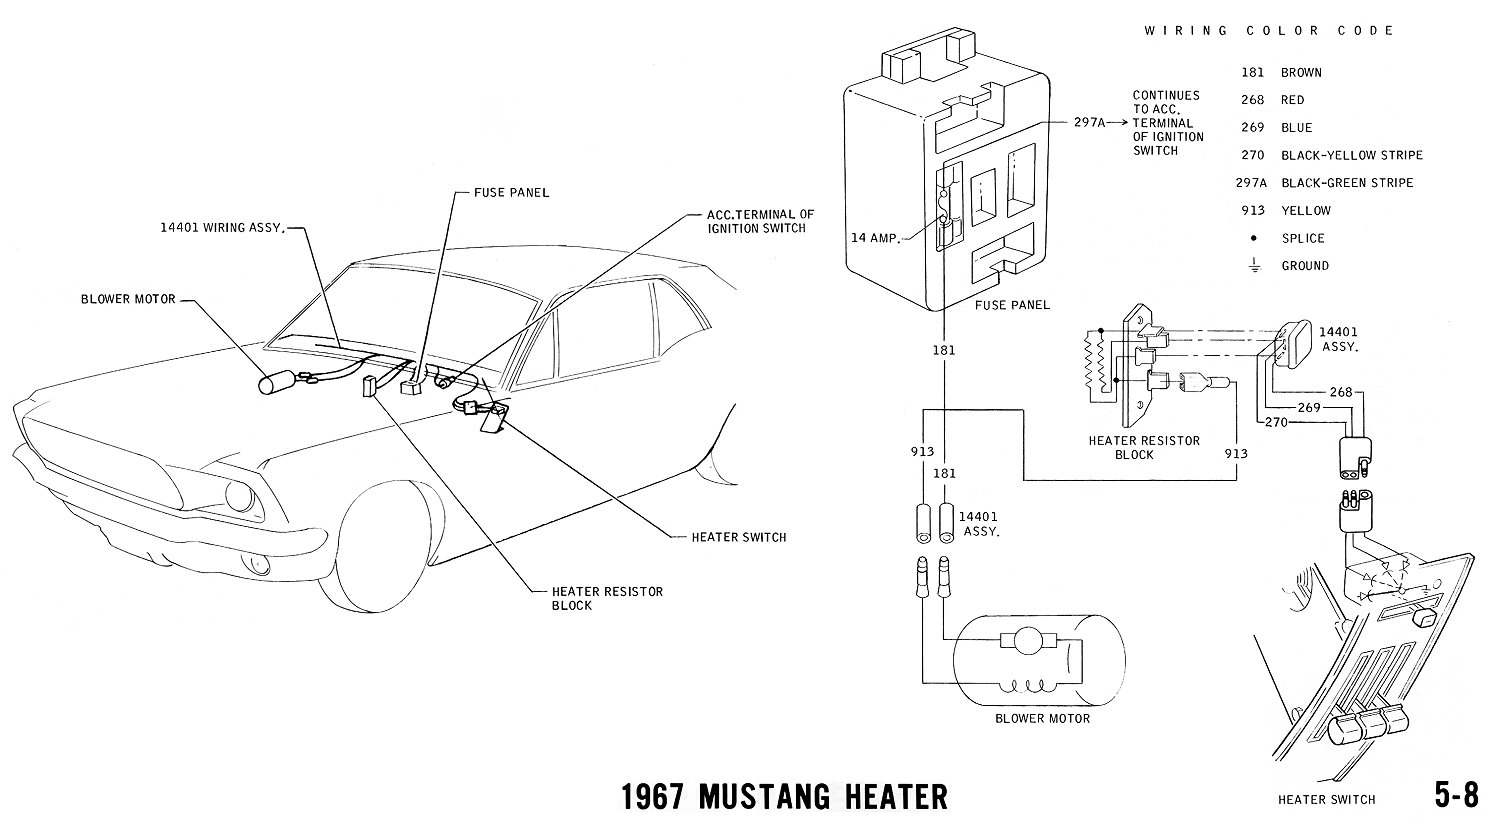 1966 ford mustang heater wiring diagram 1966 ford mustang v8 wiring diagram